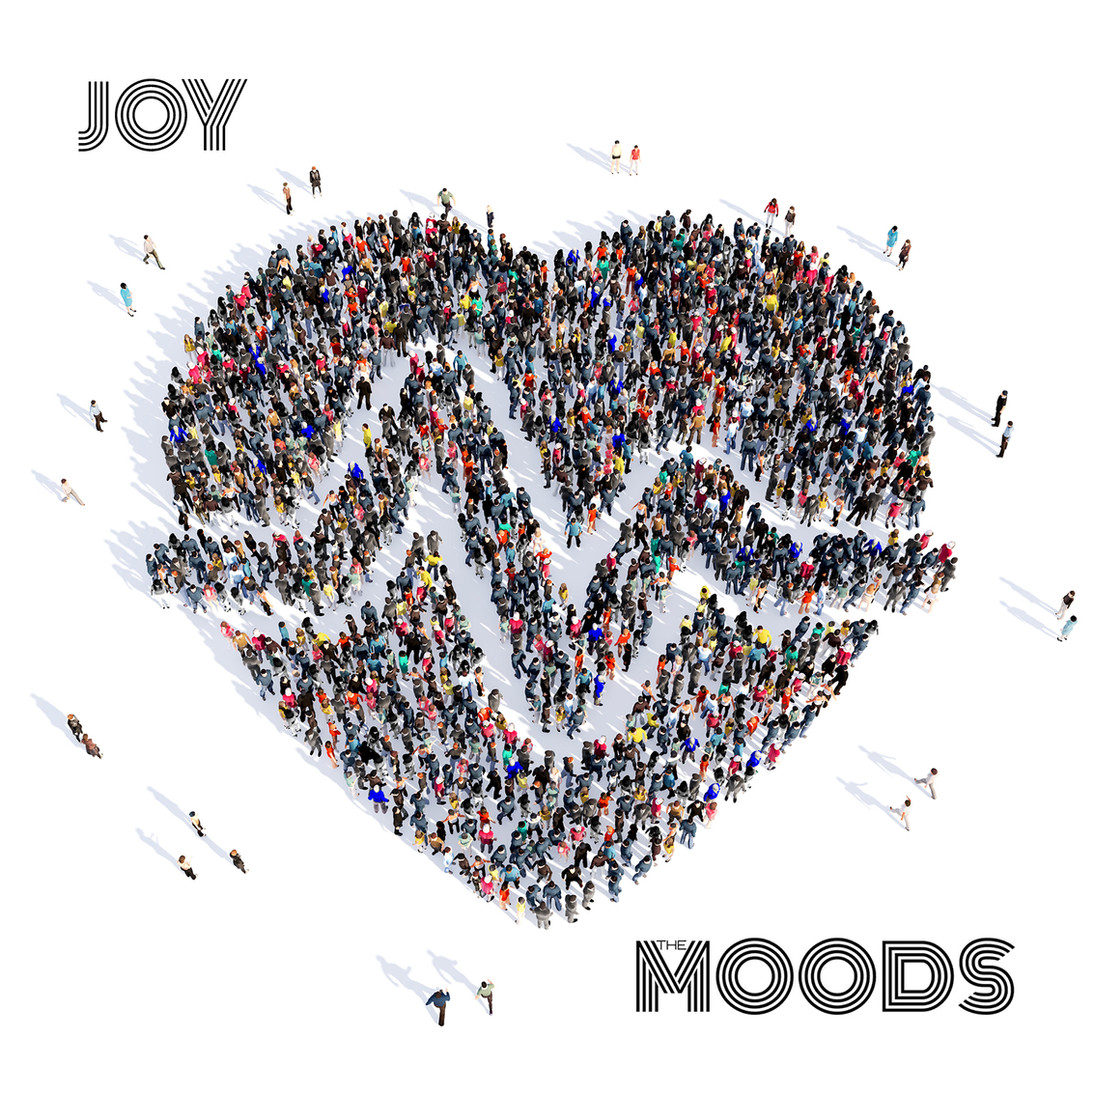 The Moods Joy Album Cover A1M Records Manchester